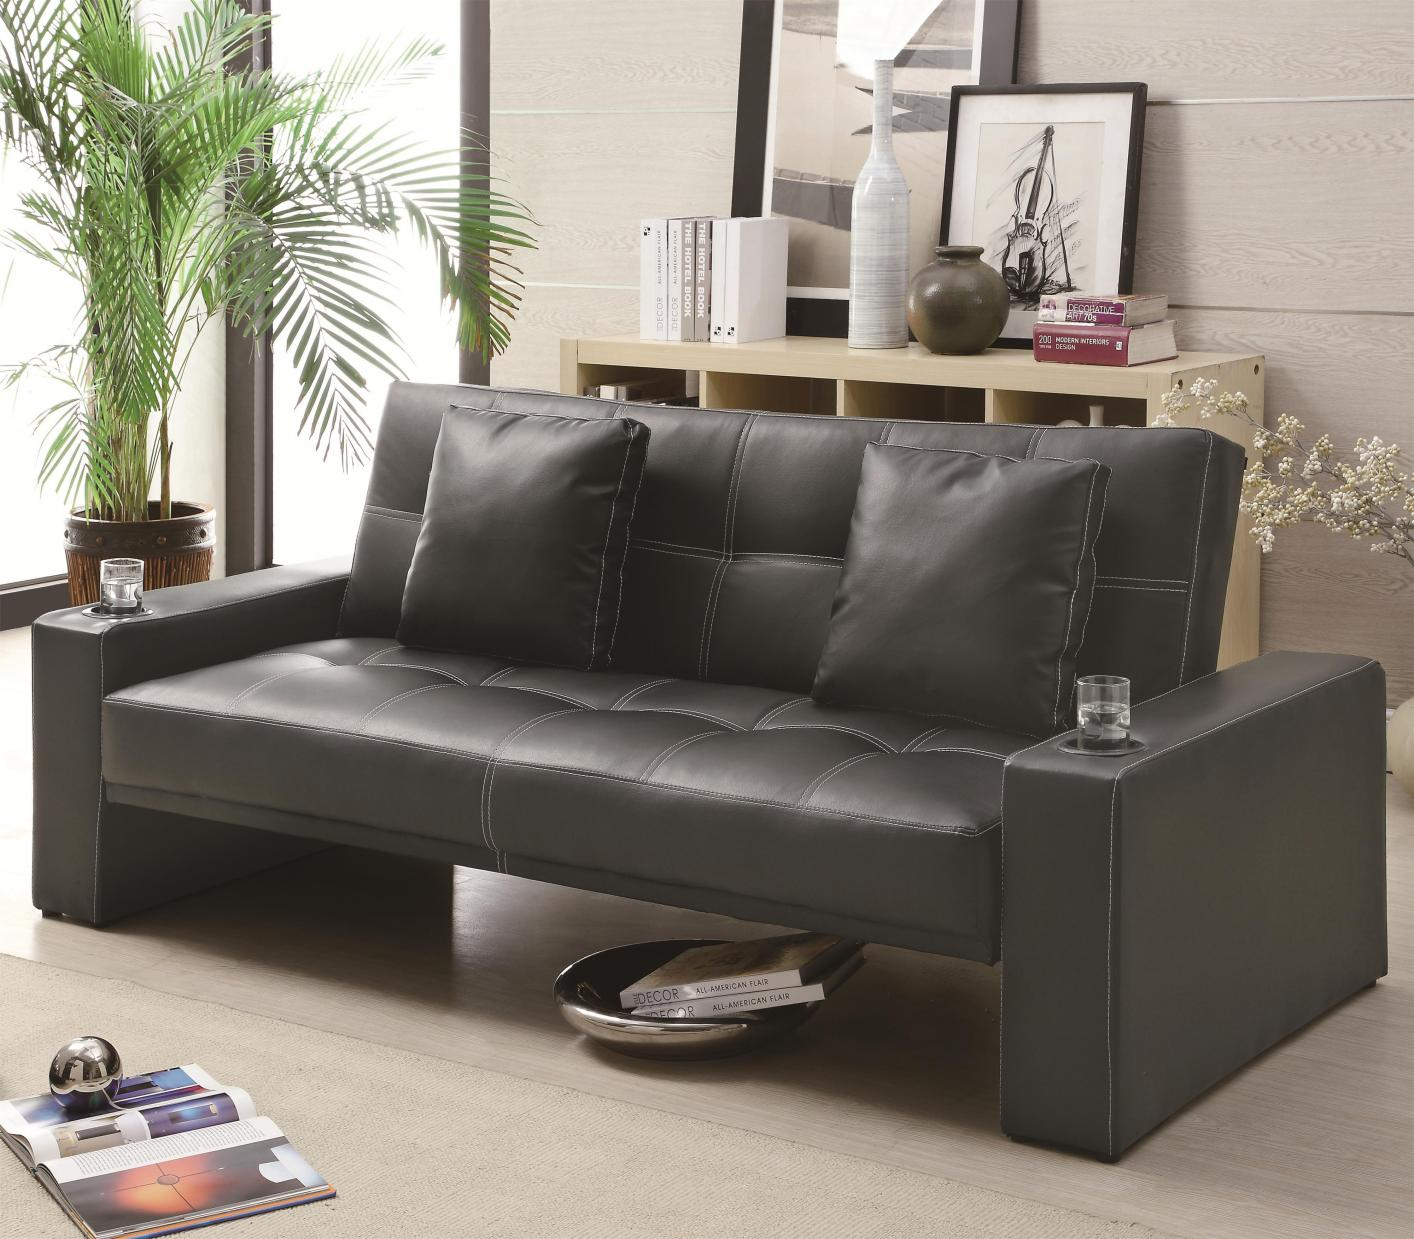 coaster 300125 black leather sofa bed steal a sofa furniture outlet